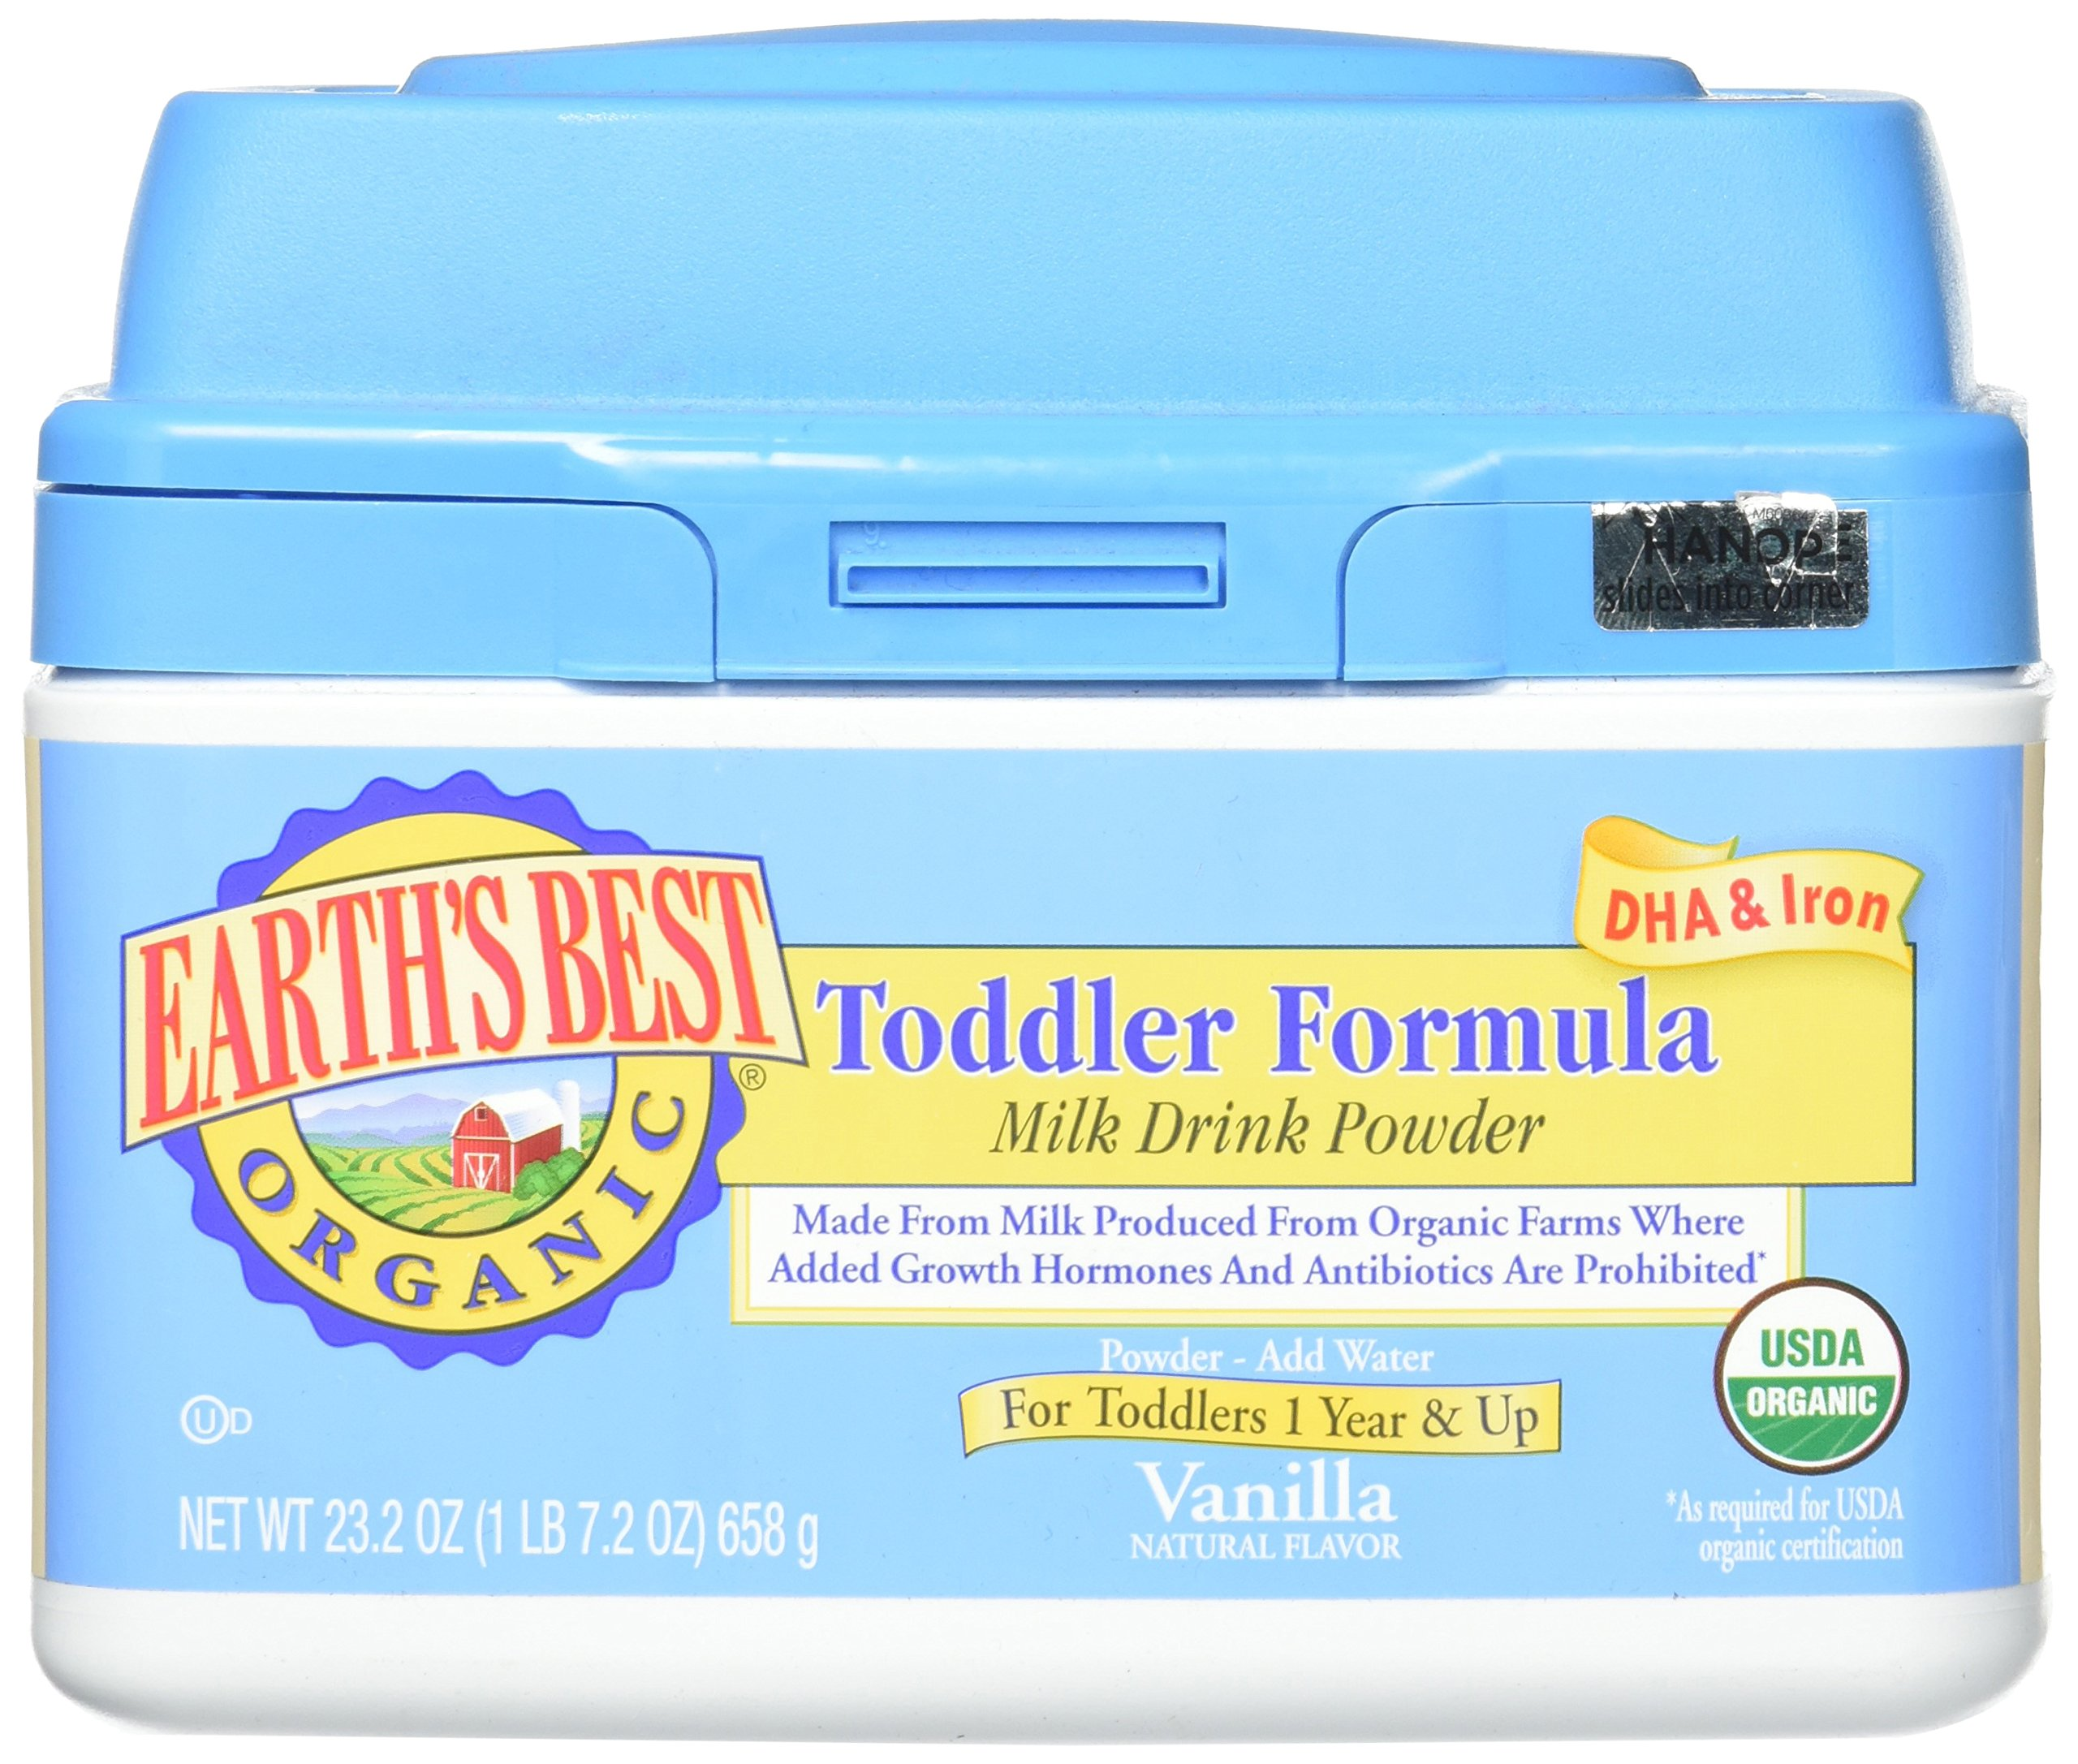 Earths Best Organic Vanilla Toddler Formula Powder, 23.2 Ounce -- 4 per case. by Earth's Best